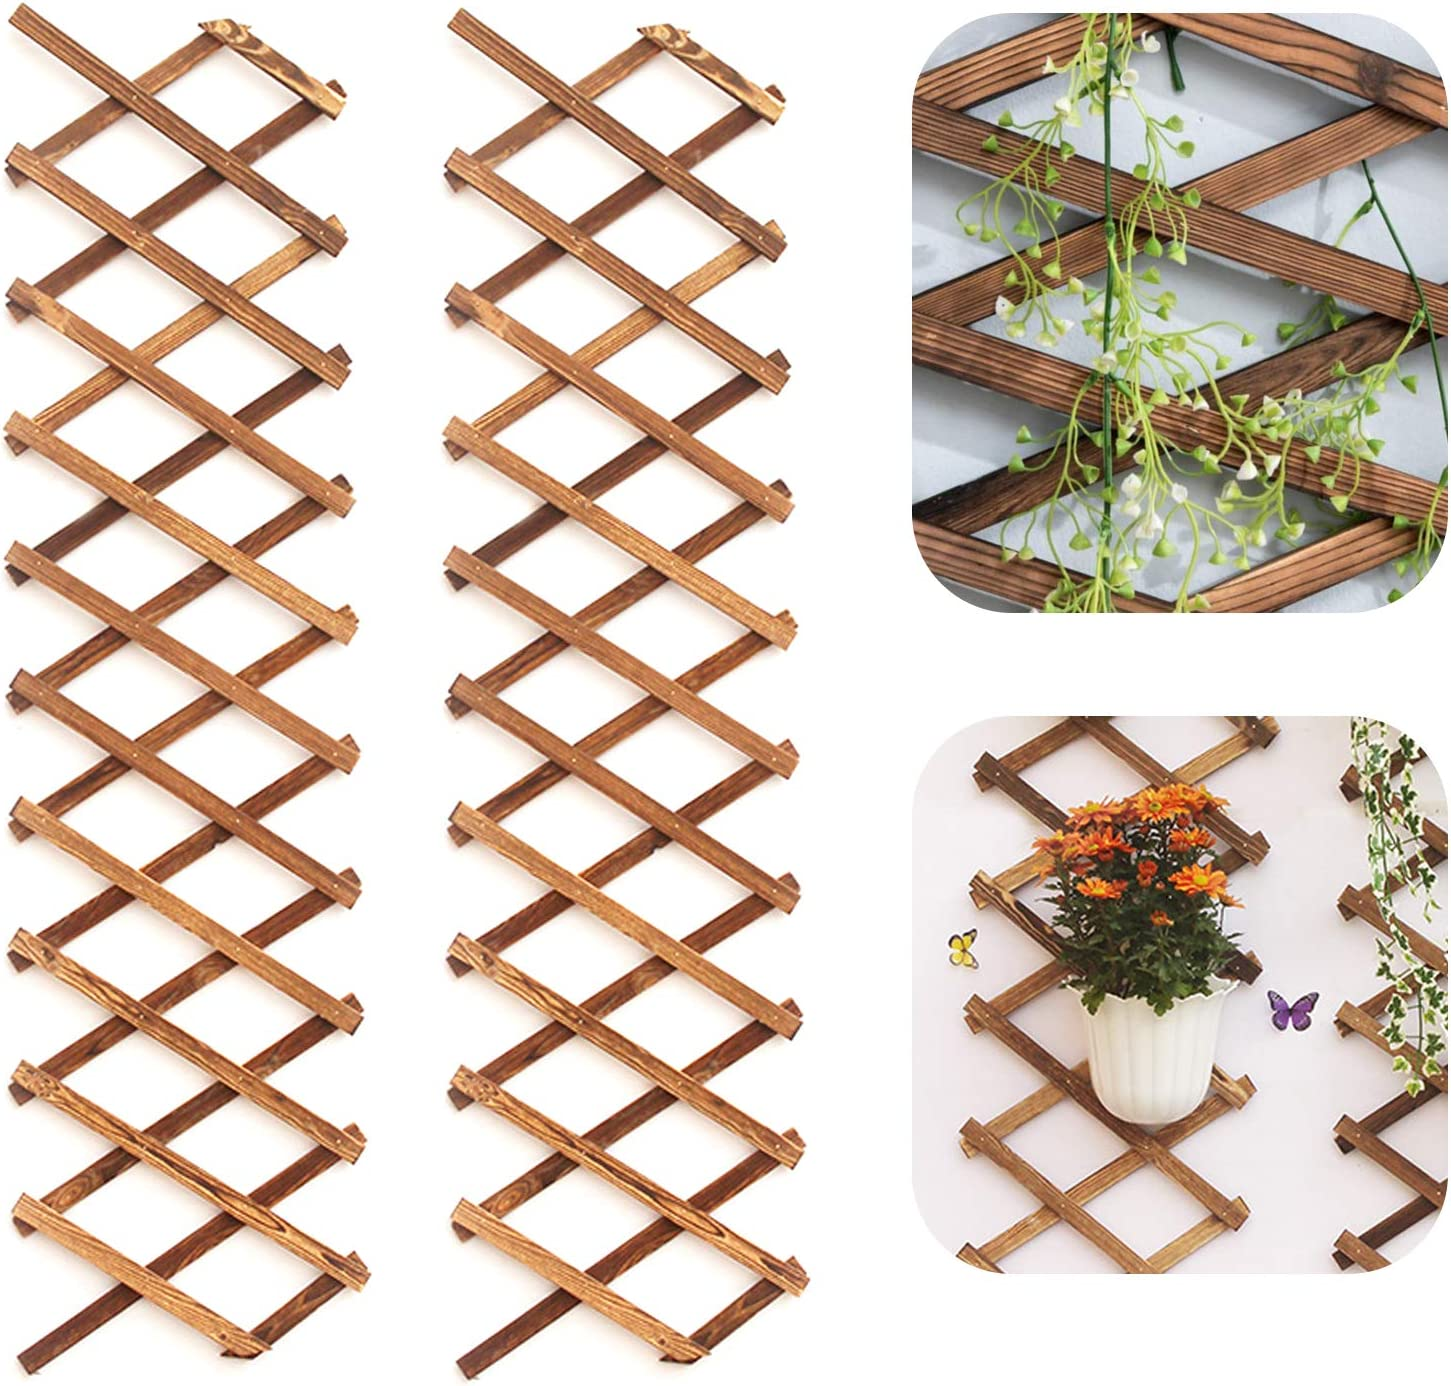 Iceyyyy 2Pack Wood Lattice Wall Planter - Expandable Hanging Wooden Planter Trellis Frame, Indoor Air Plant Vertical Rack Wall Decor for Room Garden